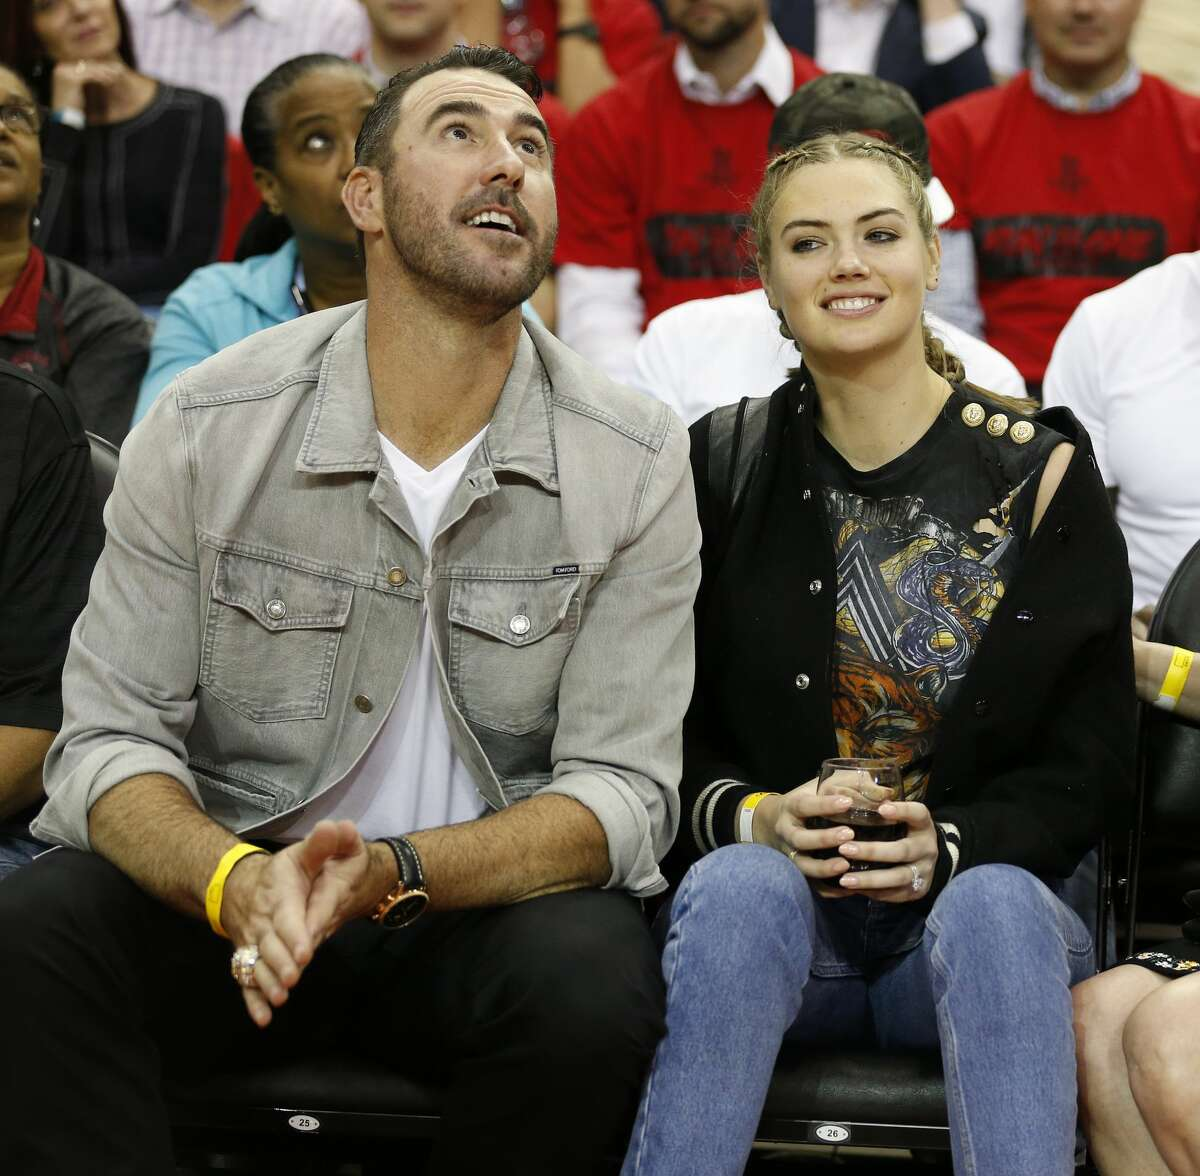 Houston Astros pitcher Justin Verlander and his wife, supermodel Kate Upton. (Photo: Brett Coomer/Houston Chronicle via AP)